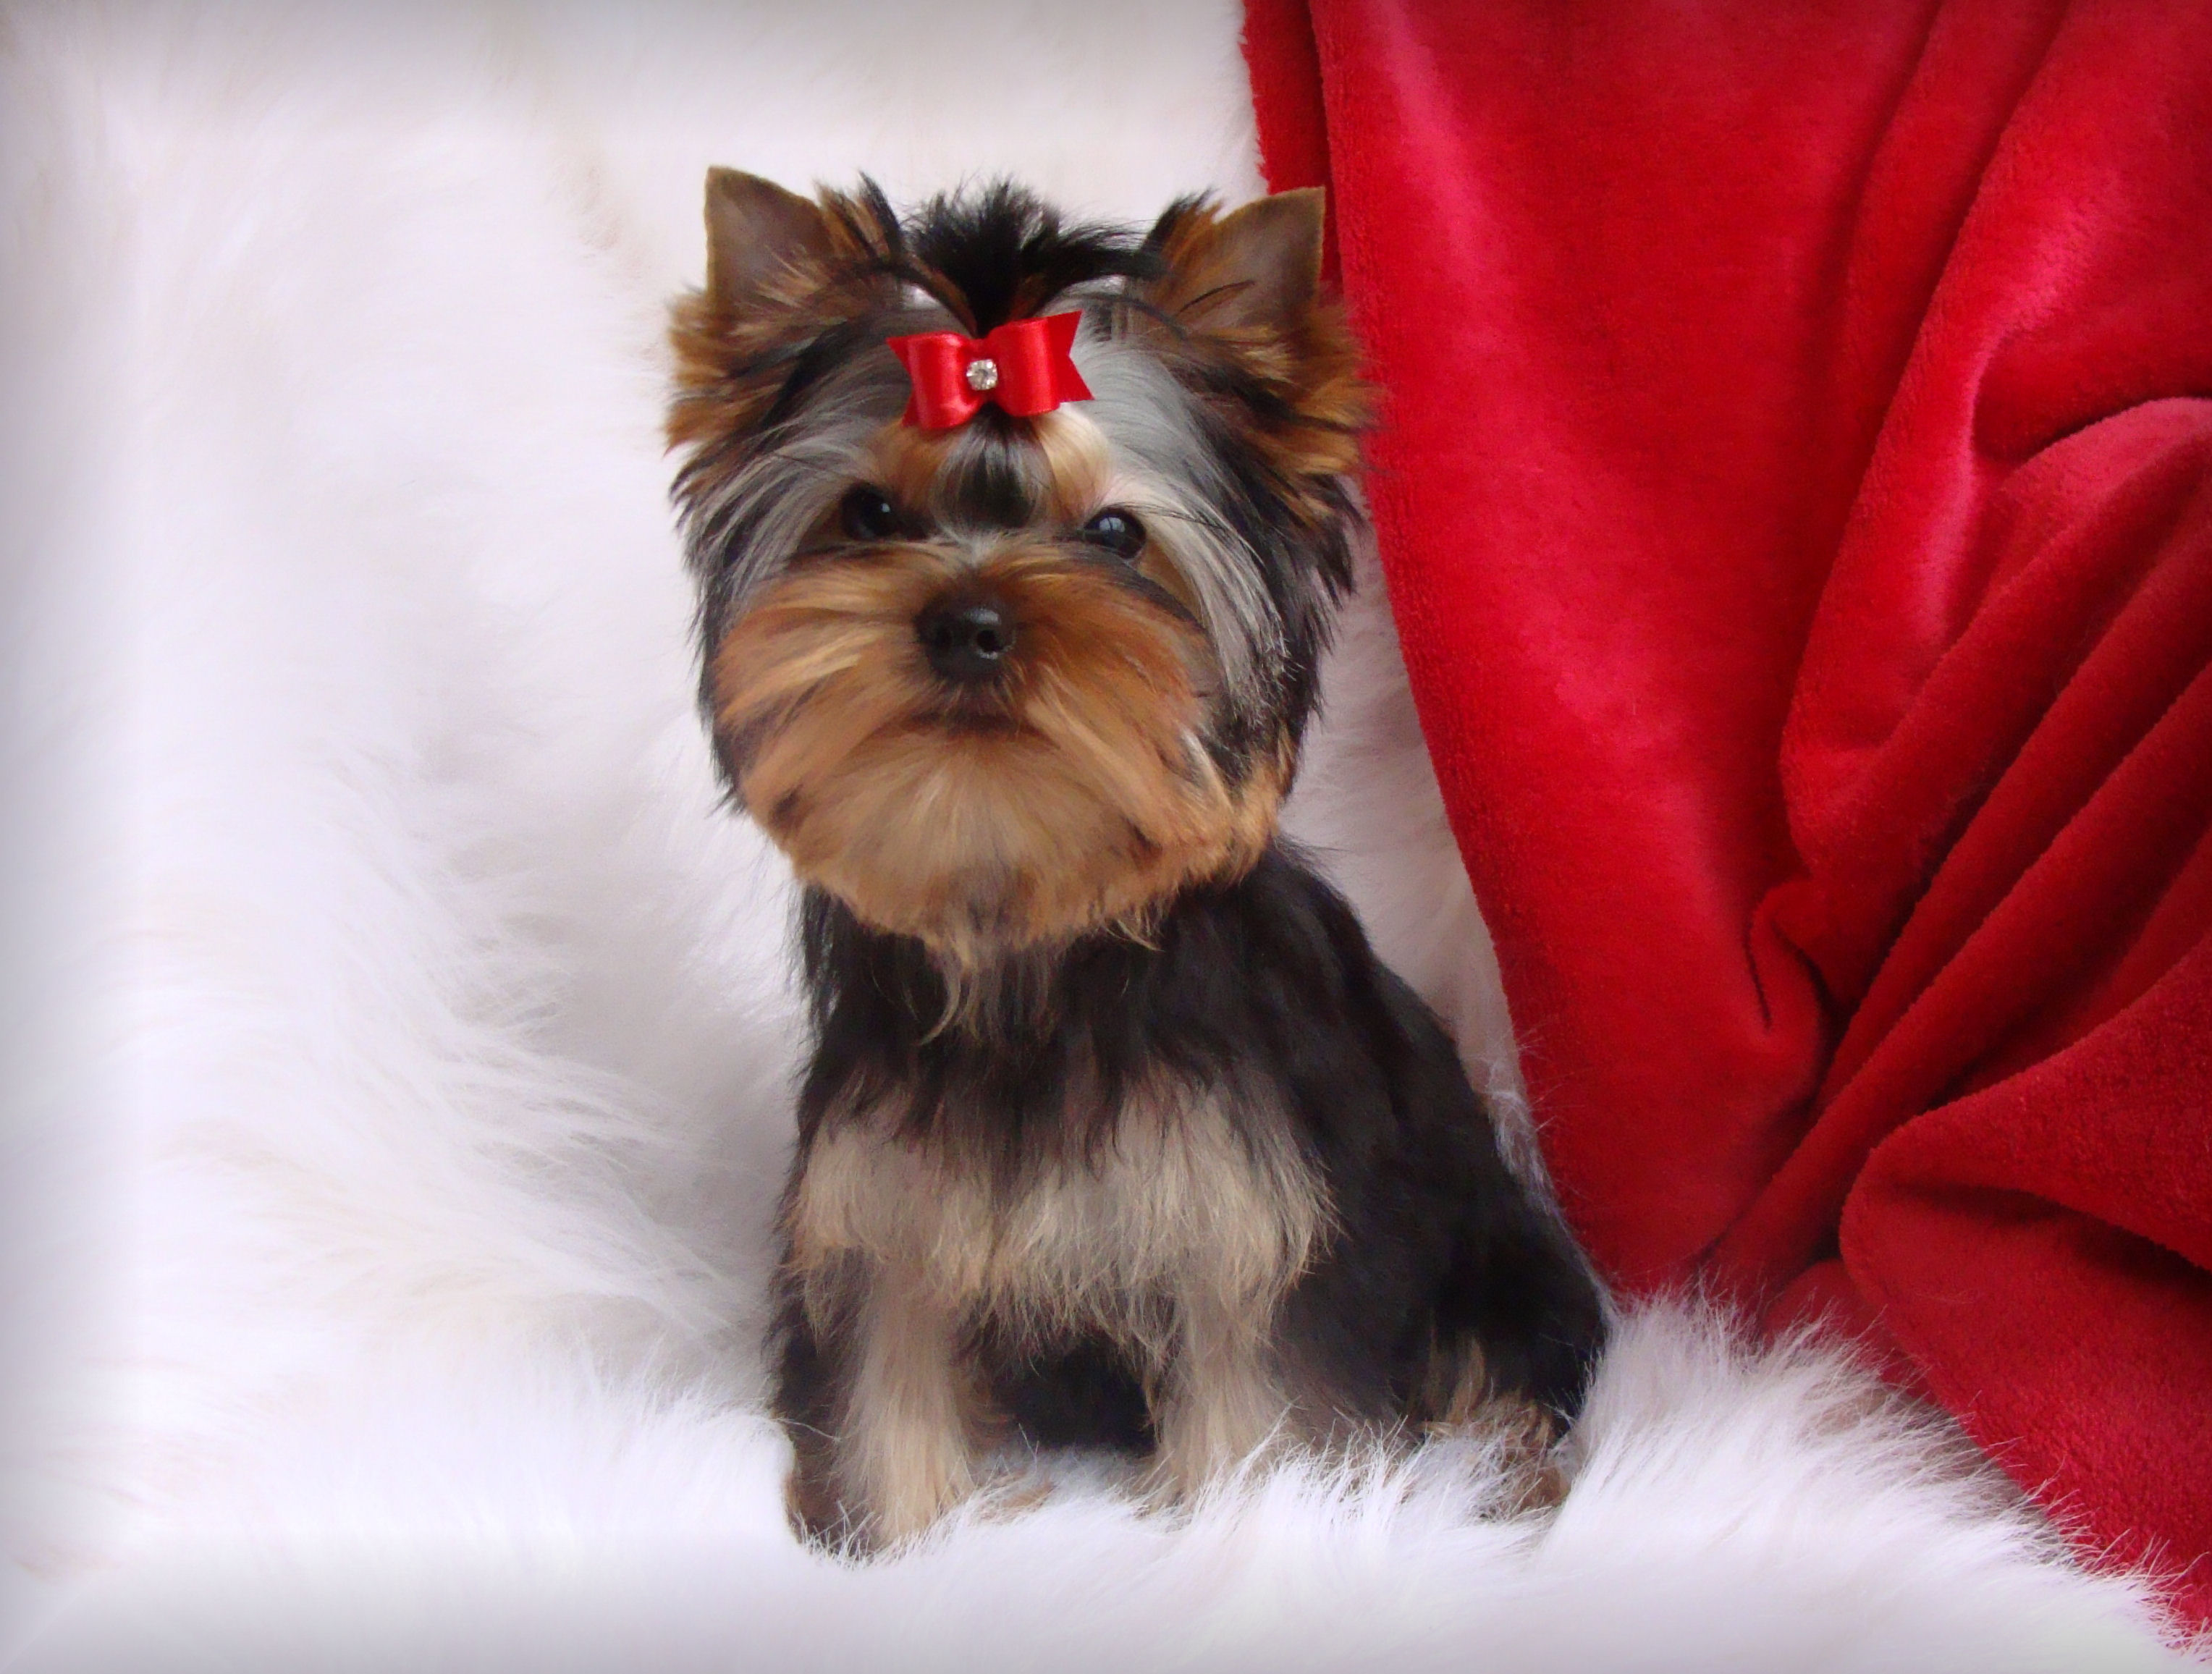 Jala Yorkies In Indiana Available Yorkie Puppies Yorkie Puppies For Sale In Yorkshire Terrier Puppies Yorkshire Terrier Puppy Yorkie Yorkie Yorkshire Terrier